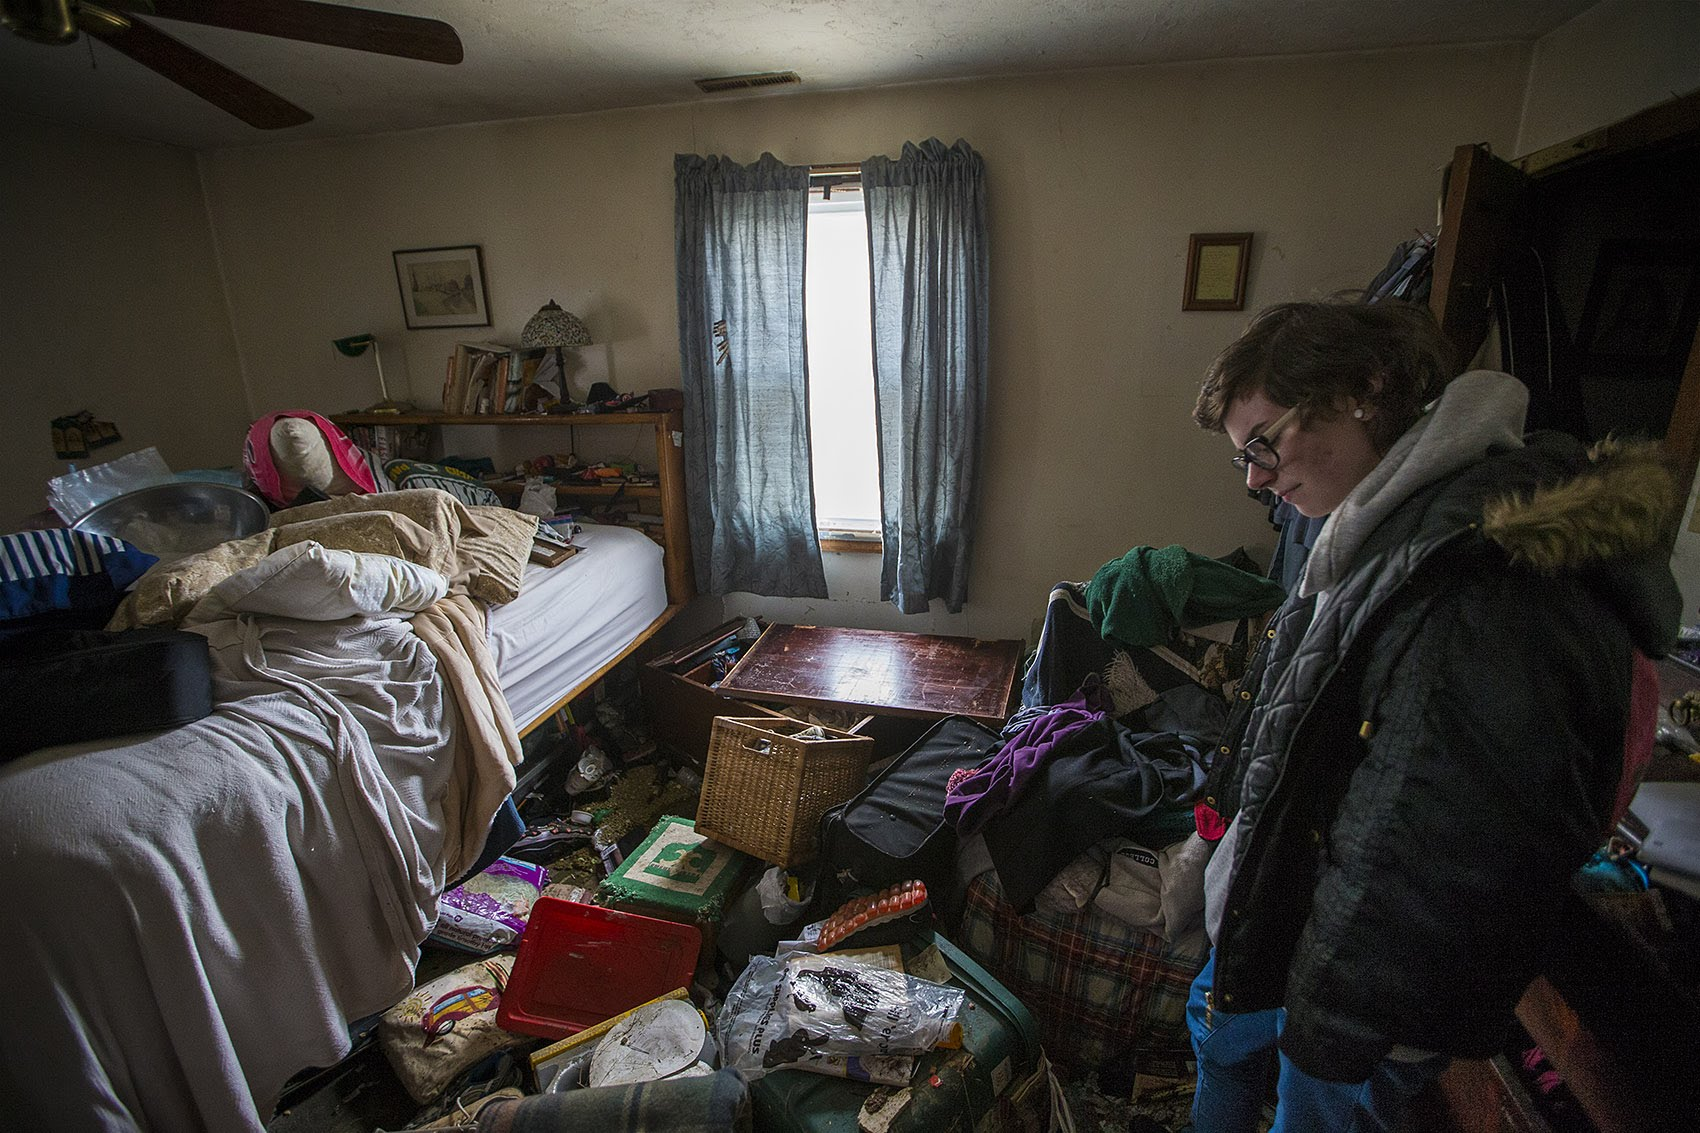 Taylor Fenton bows her head, looking at the damage in one of the family bedrooms in her home in Quincy caused by the nor'easter on Friday. (Jesse Costa/WBUR)